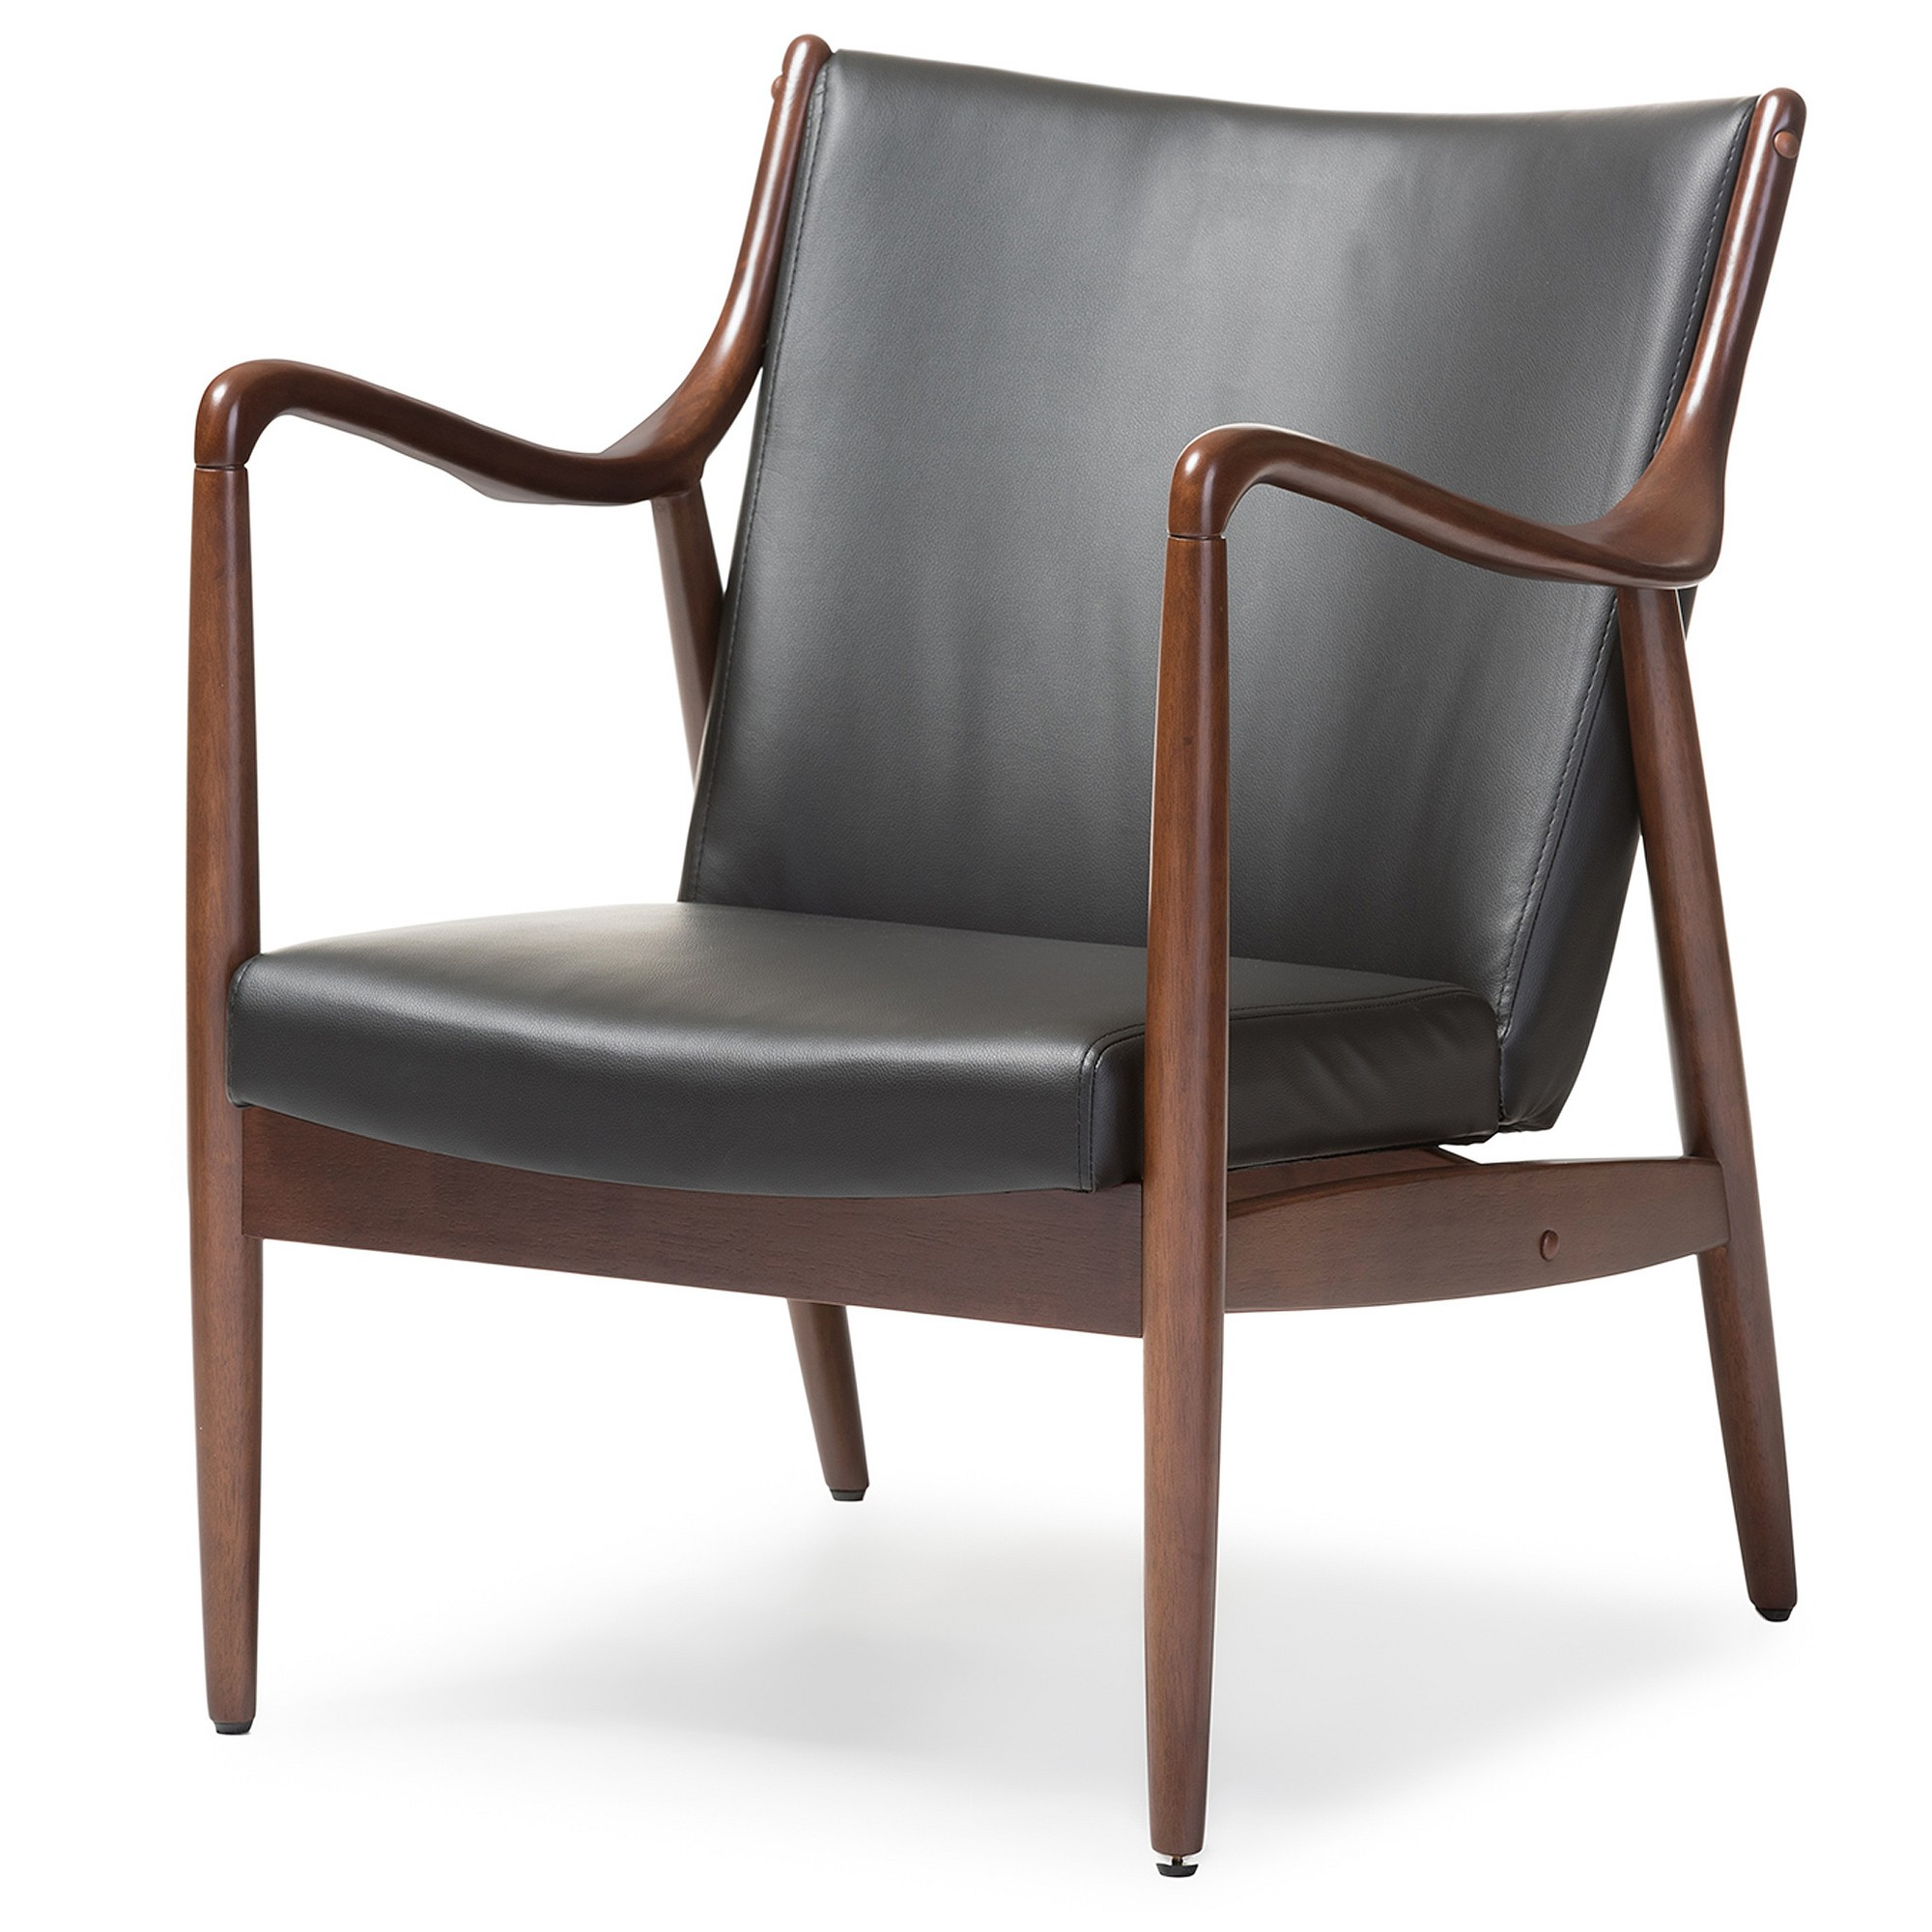 Super Shakespeare Mid Century Modern Retro Faux Leather Squirreltailoven Fun Painted Chair Ideas Images Squirreltailovenorg